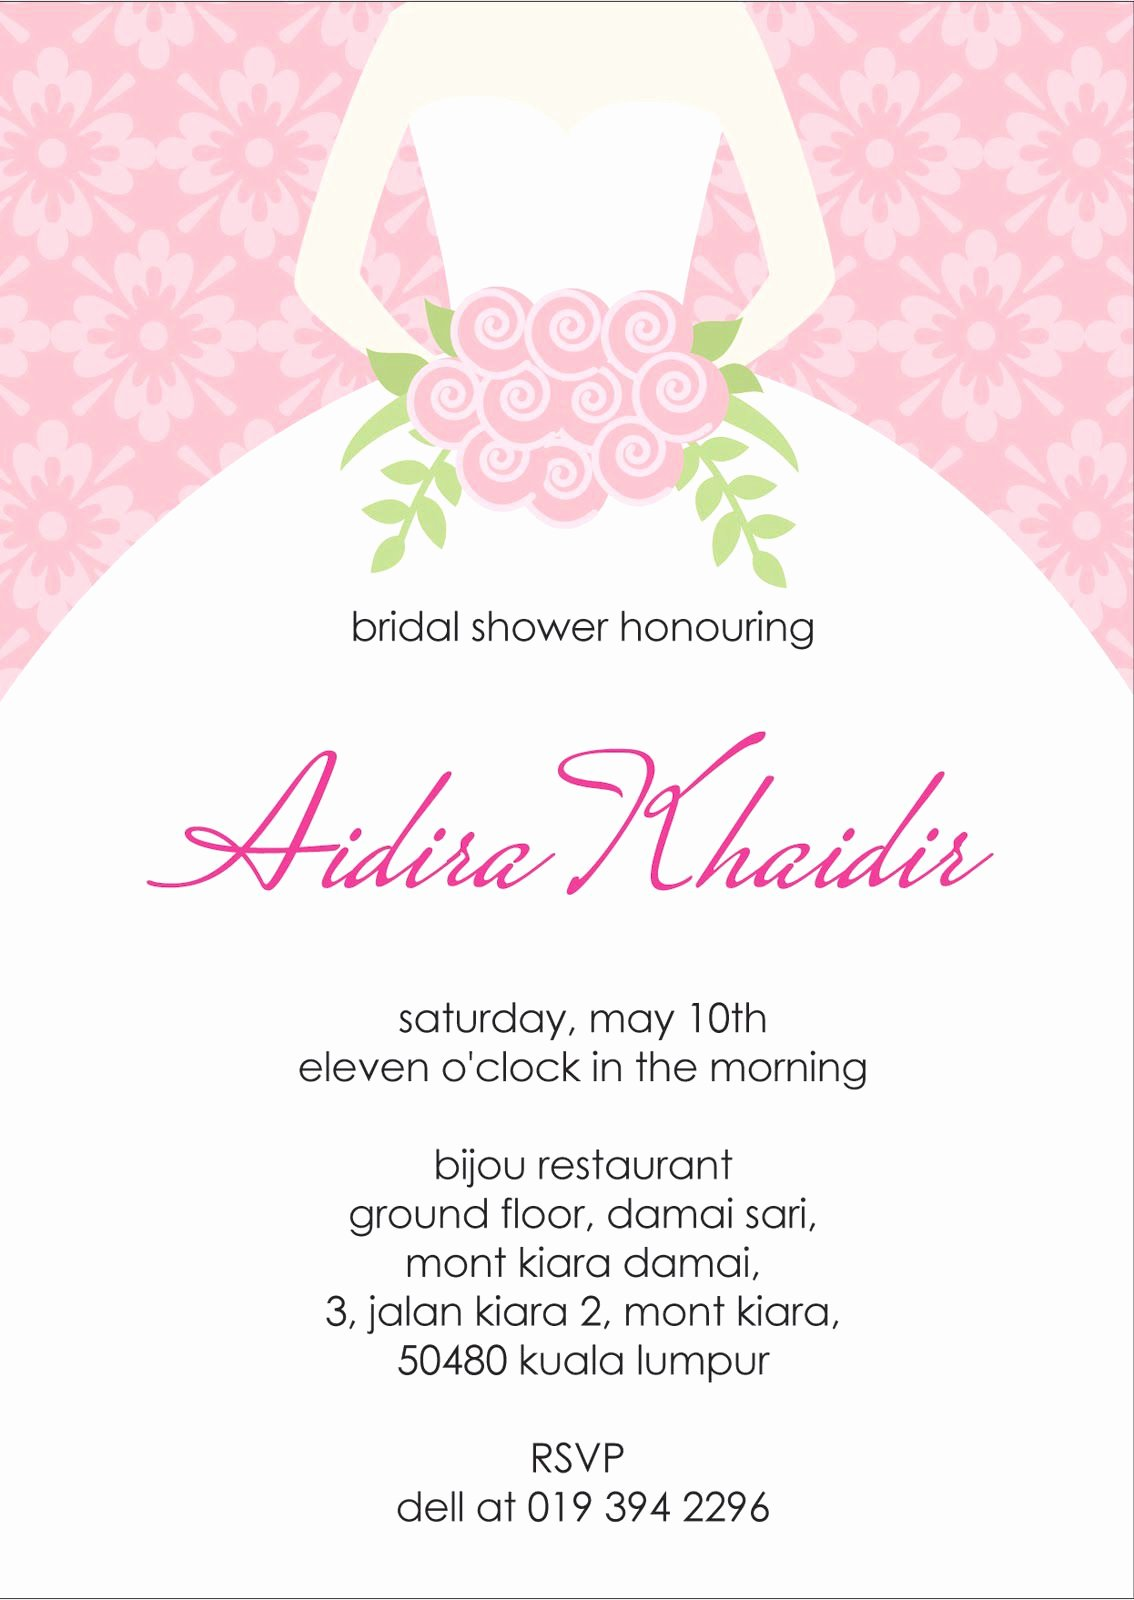 Bridal Shower Invitations Template Best Of Bridal Shower Invitation Verbiage Bridal Shower